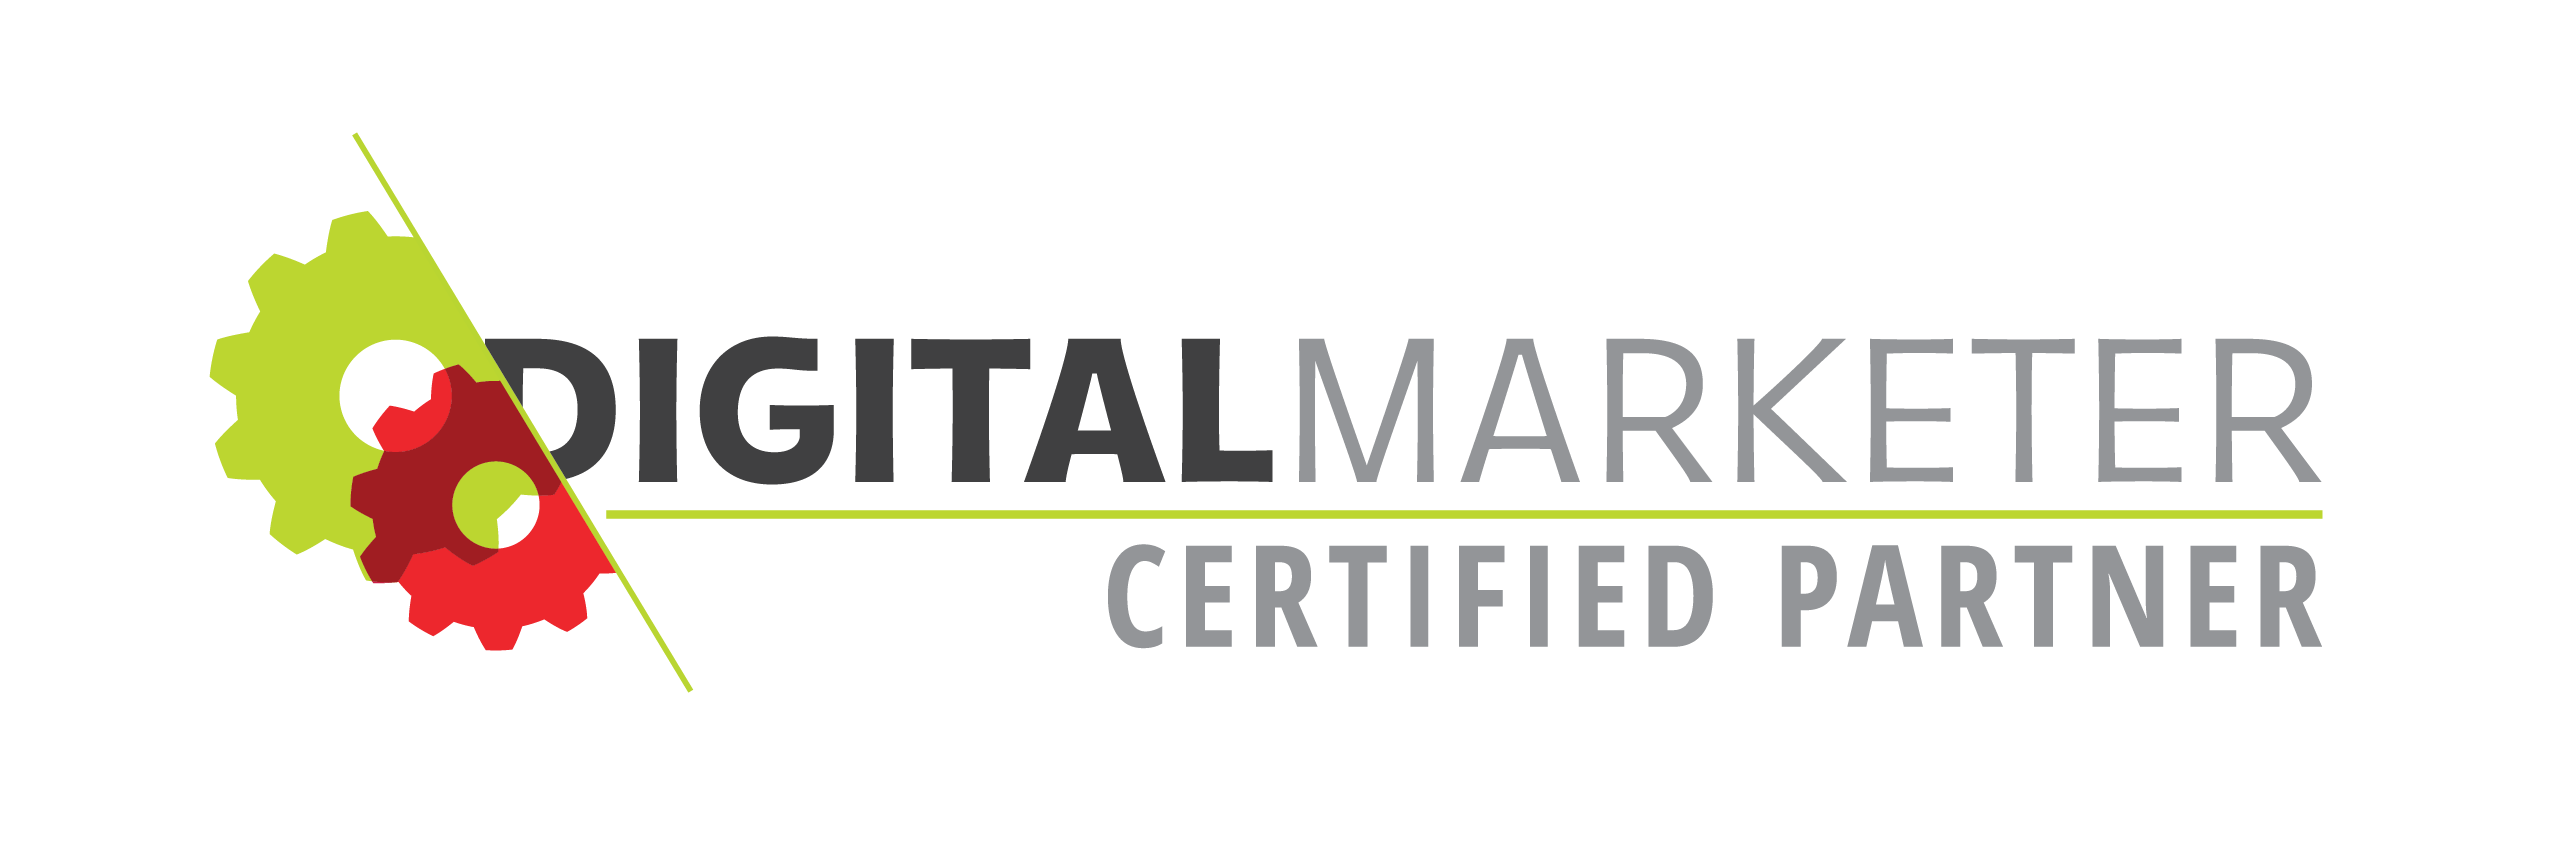 Digital Marketer Certified Partner